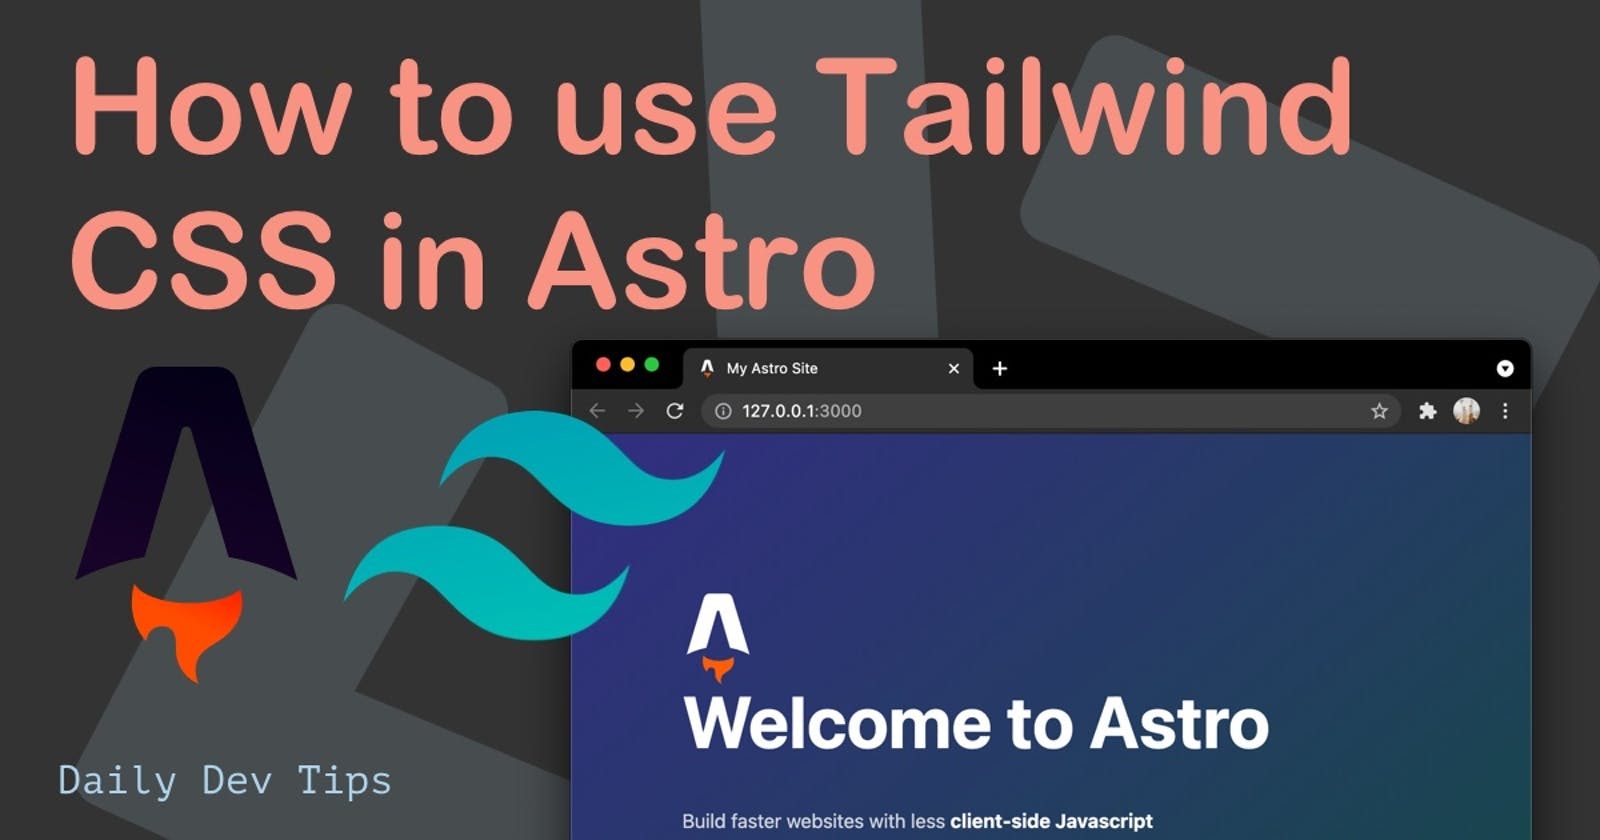 How to use Tailwind CSS in Astro